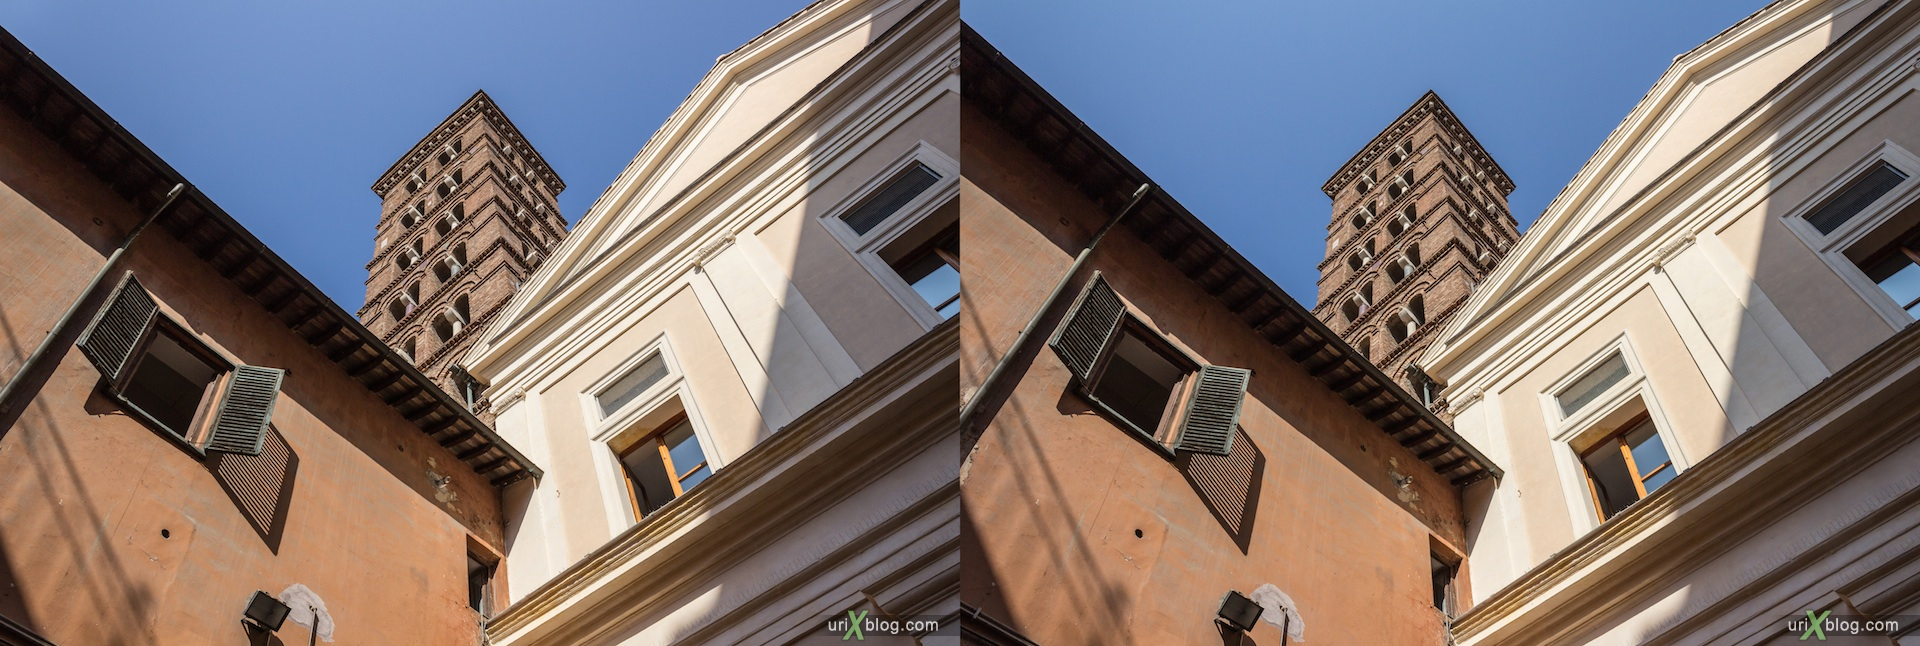 2012, church of San Silvestro in Capite, Rome, Italy, cathedral, monastery, Christianity, Catholicism, 3D, stereo pair, cross-eyed, crossview, cross view stereo pair